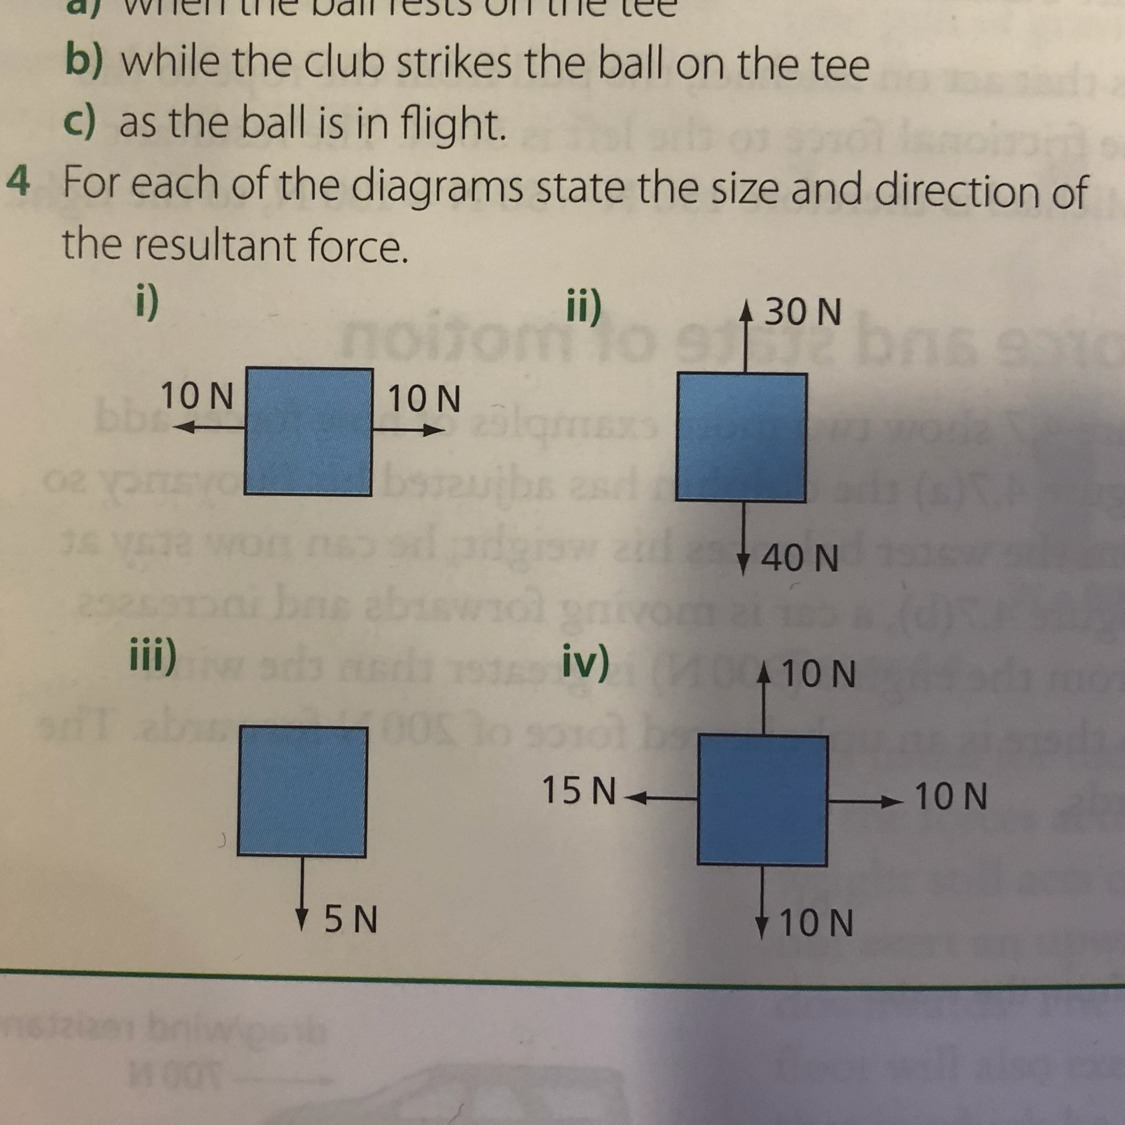 hight resolution of a golf ball is hit of it s tee 200m down the fairway draw diagrams to show all the forces acting on the ball a when the ball rests on the tree